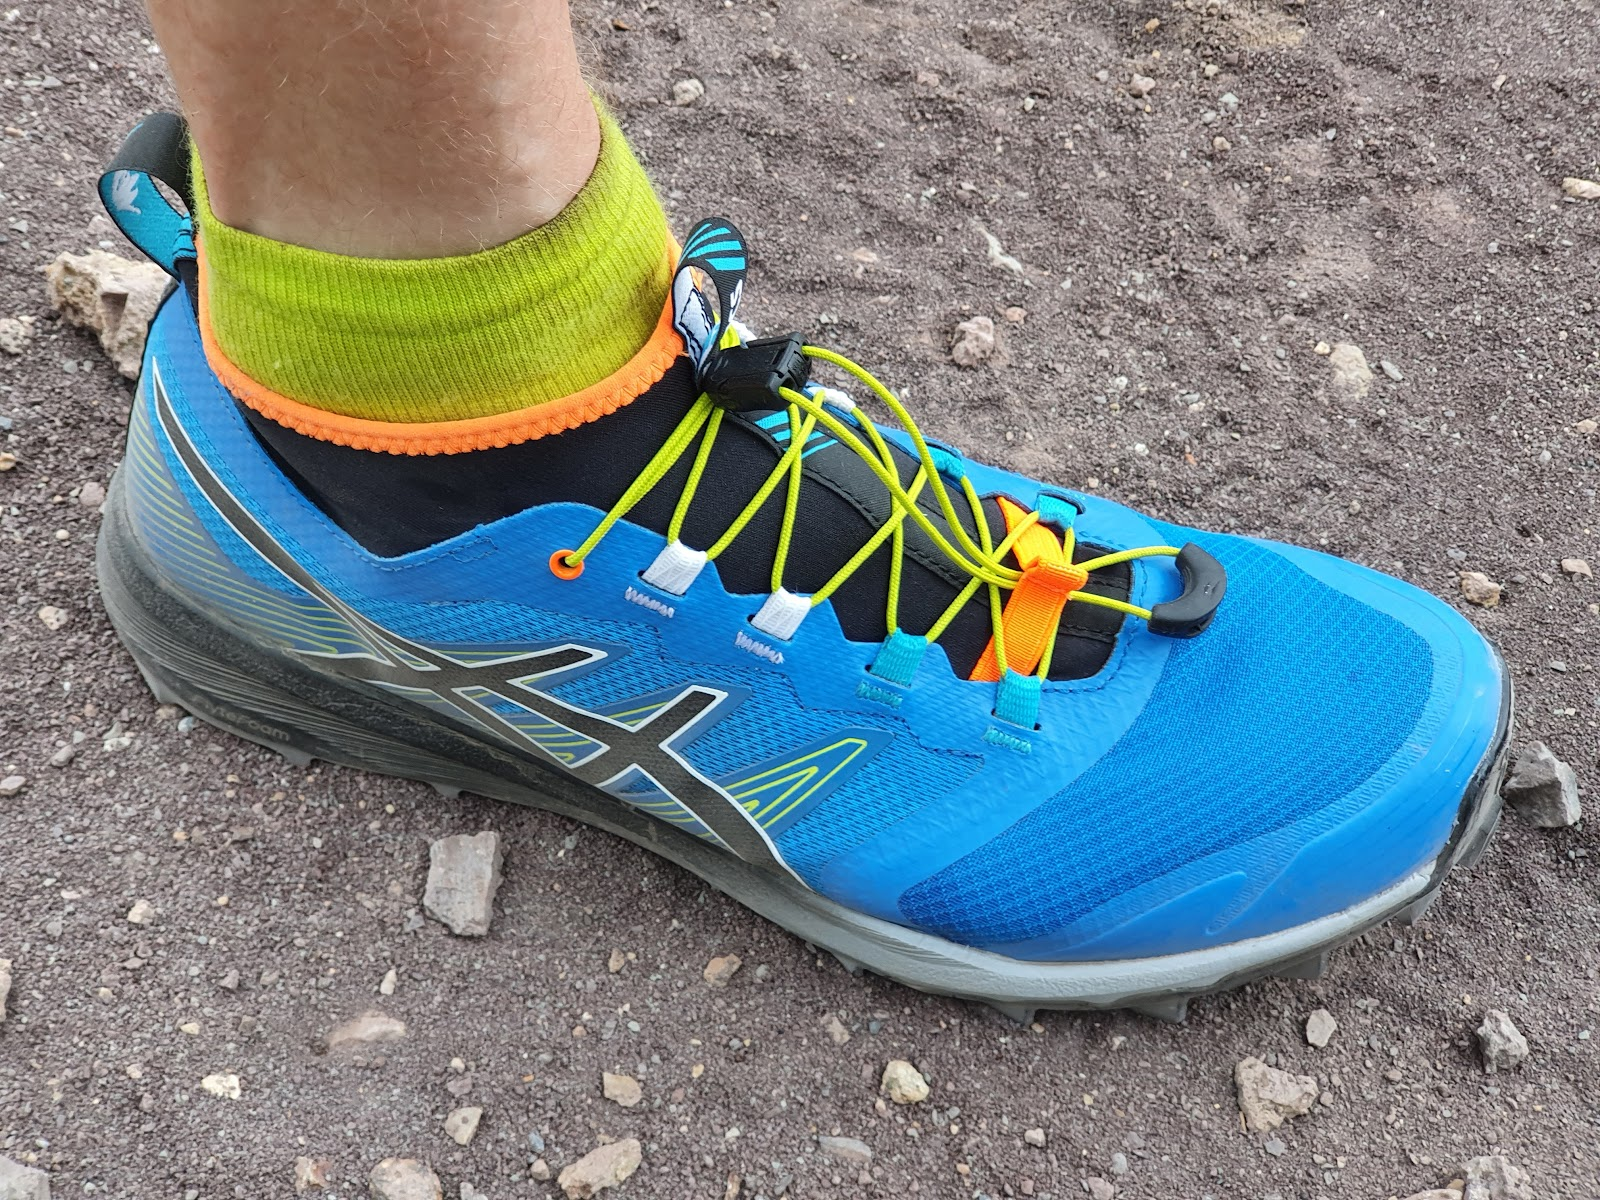 Faringe Despertar Universidad  Road Trail Run: ASICS GEL Fujitrabuco Pro Multi Tester Review - A surprise,  to be sure, but a welcome one!